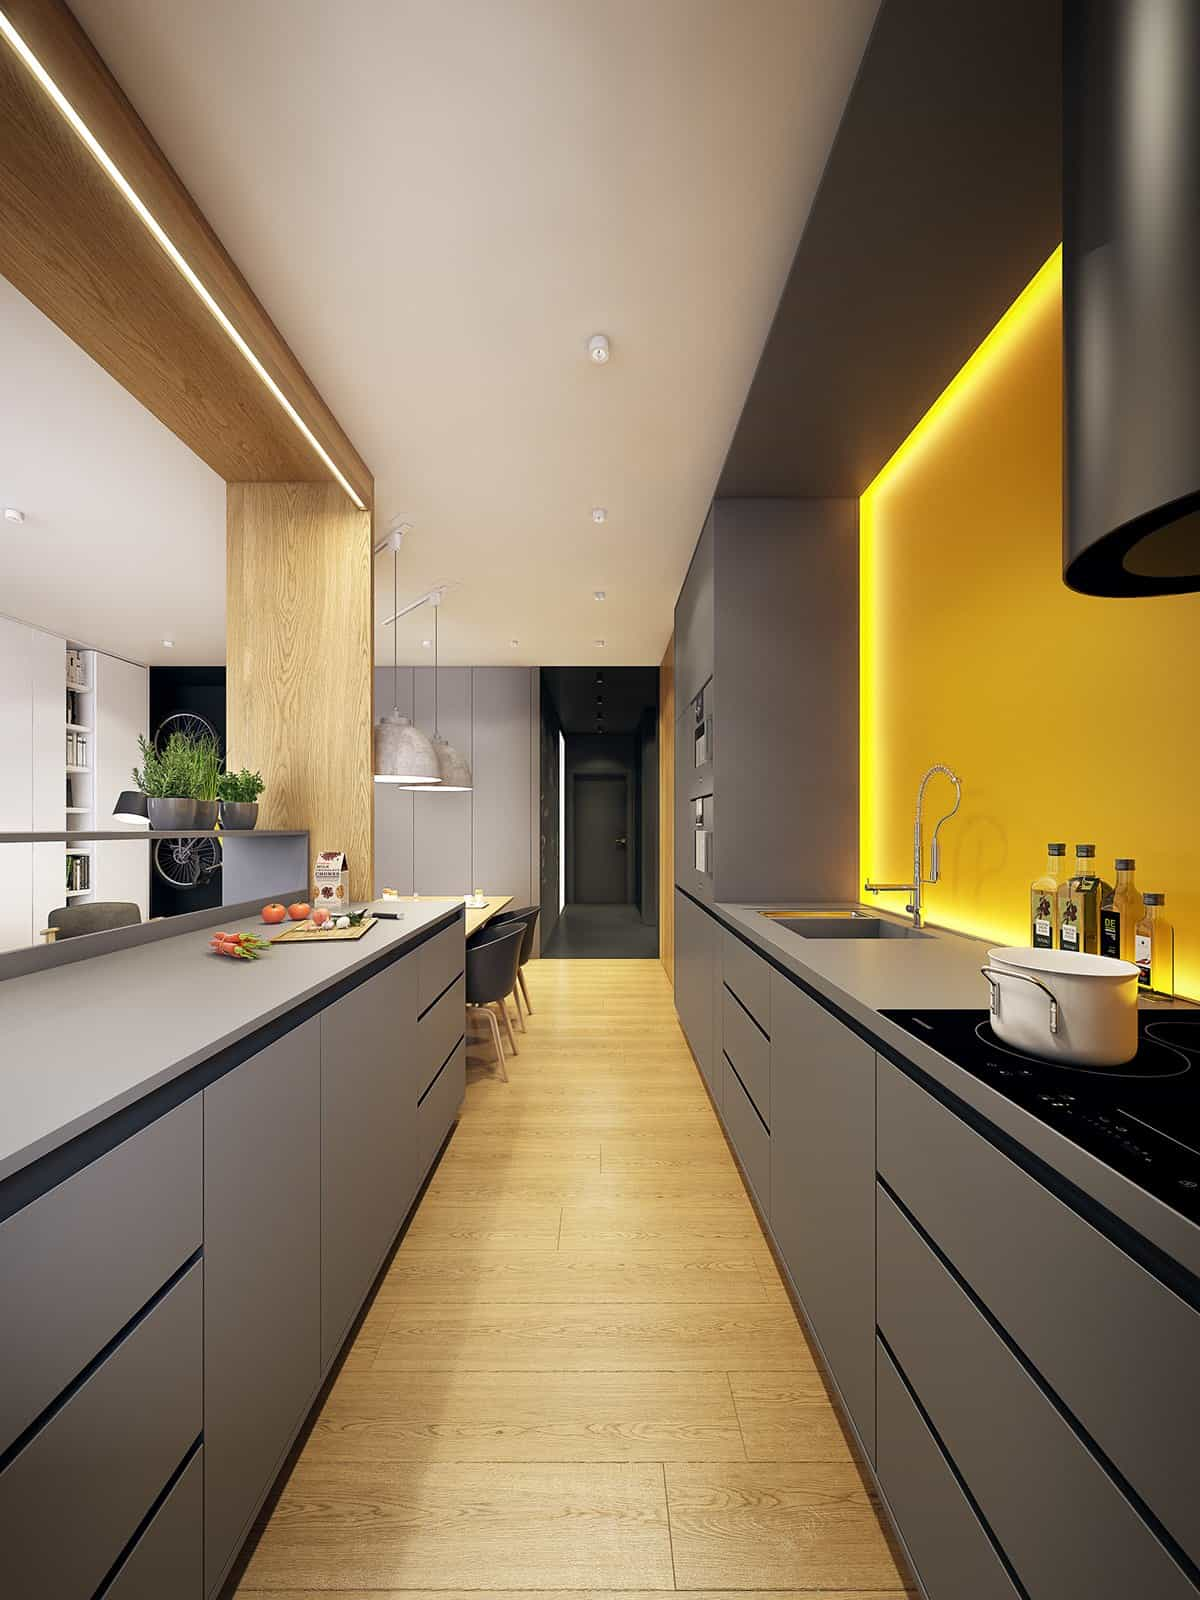 Tidbits of yellow work well in a darker decorated kitchen, it brings the darker hues back to life while softening the appearance of them.